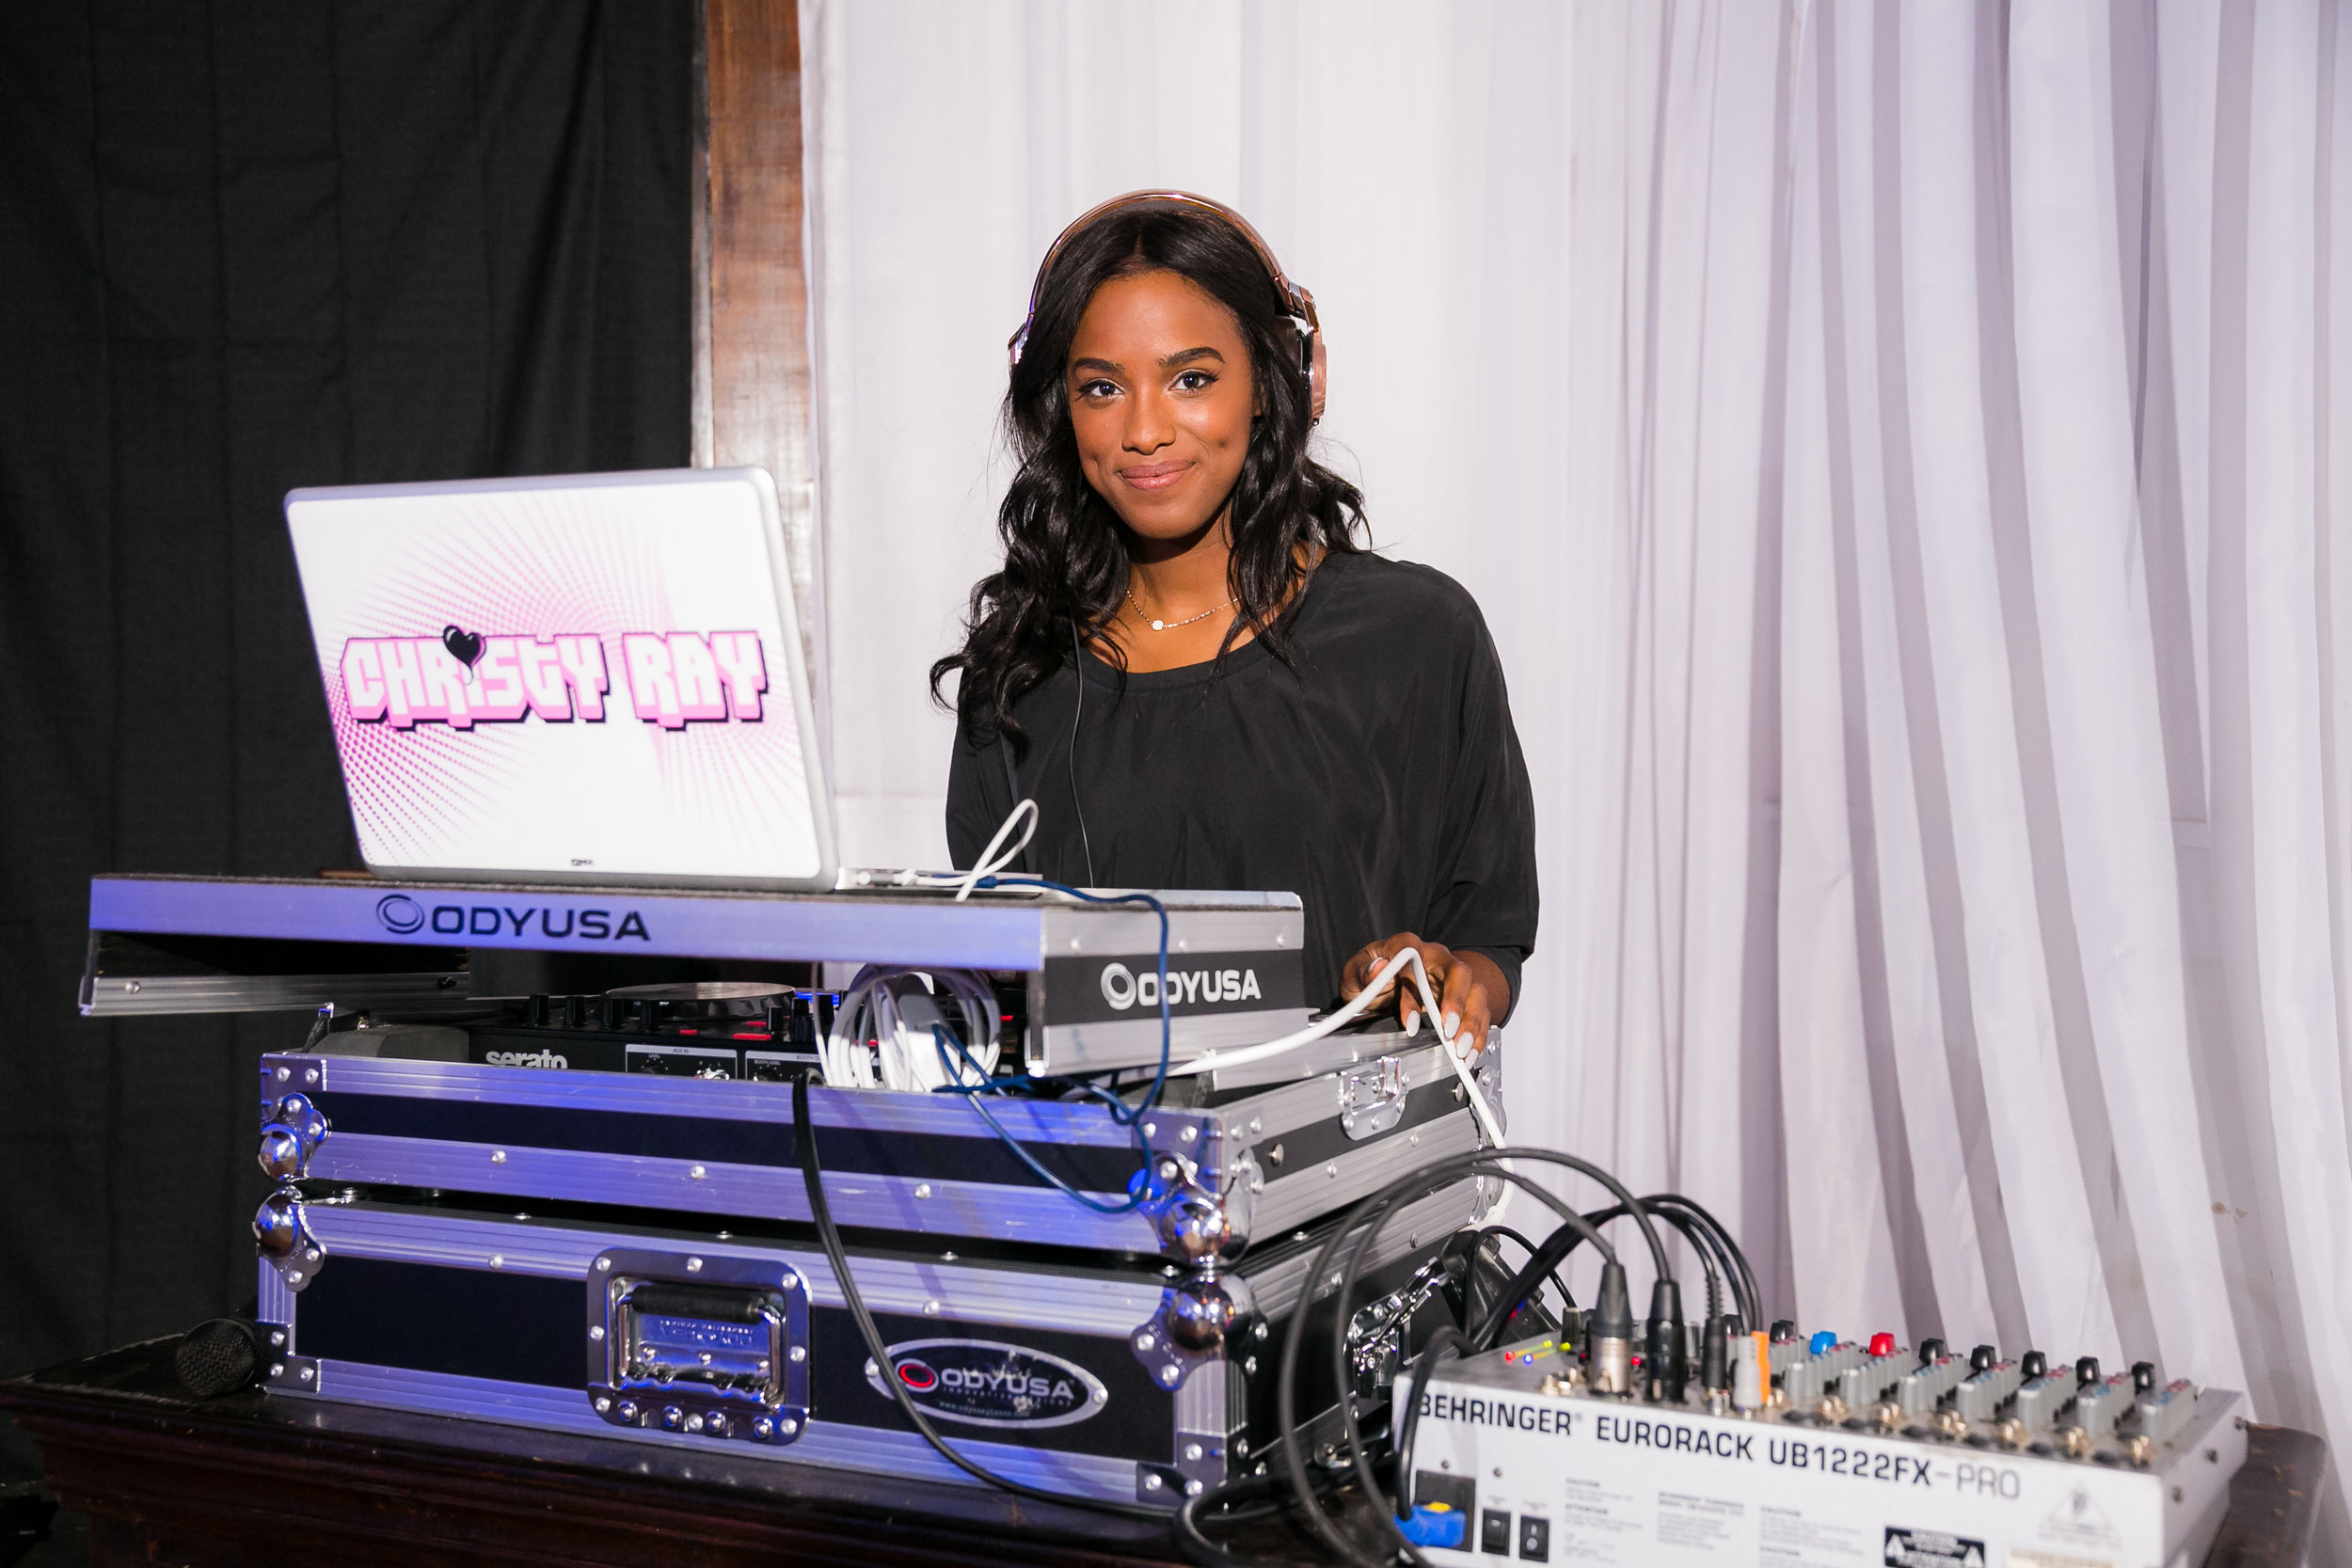 DJ Christy Ray made quite the impression with her amazing playlist.